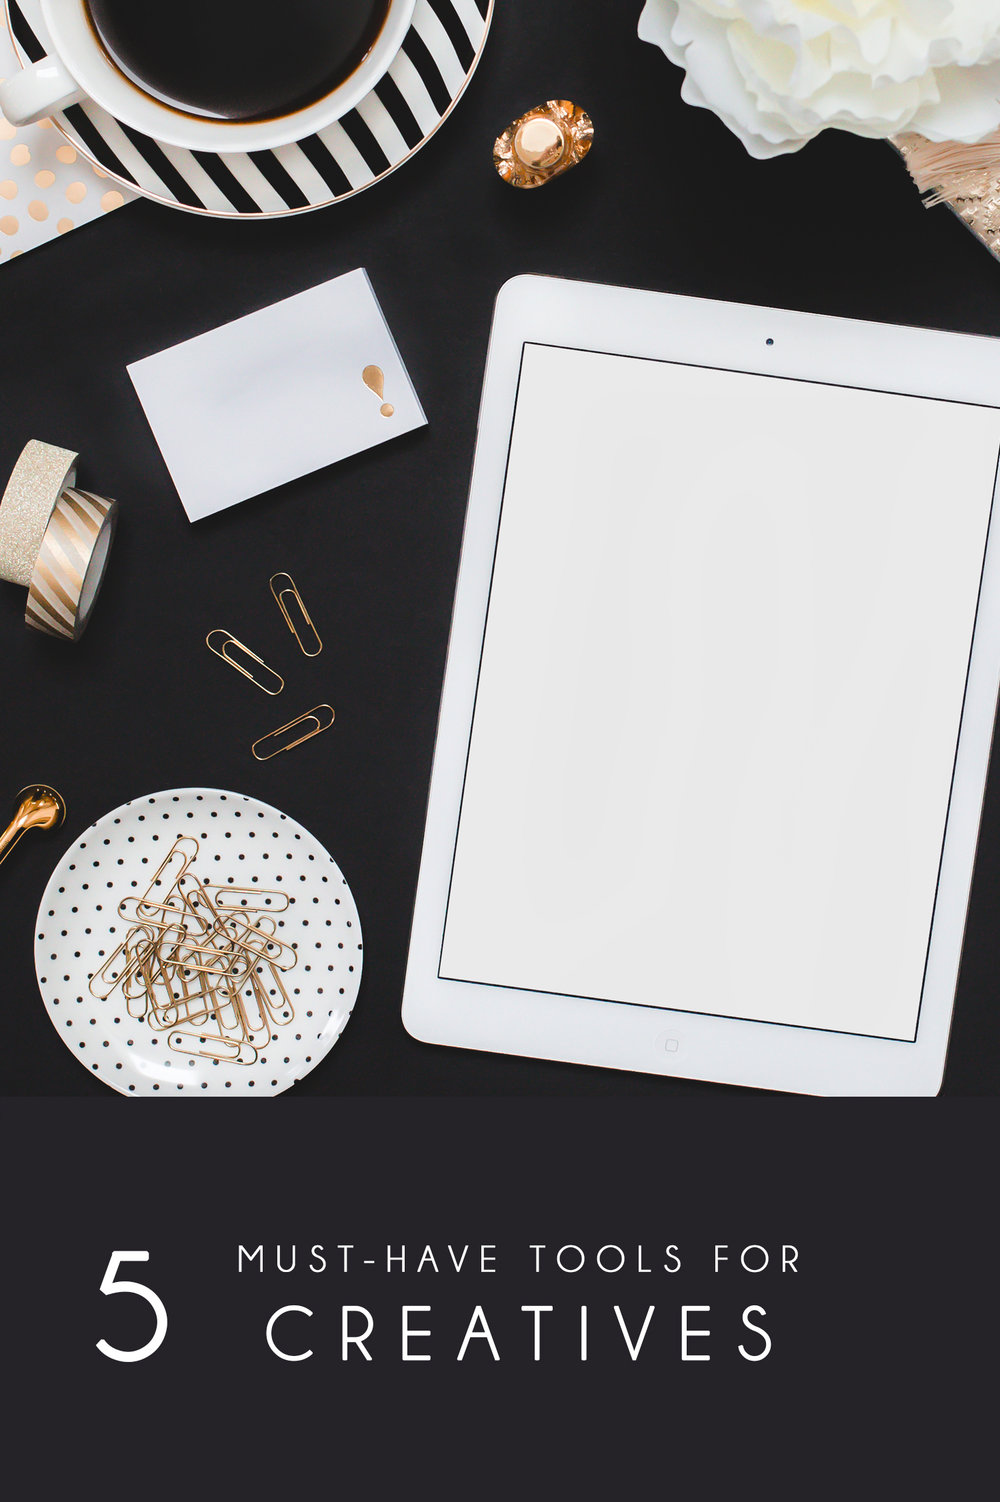 5 Tools for Creatives